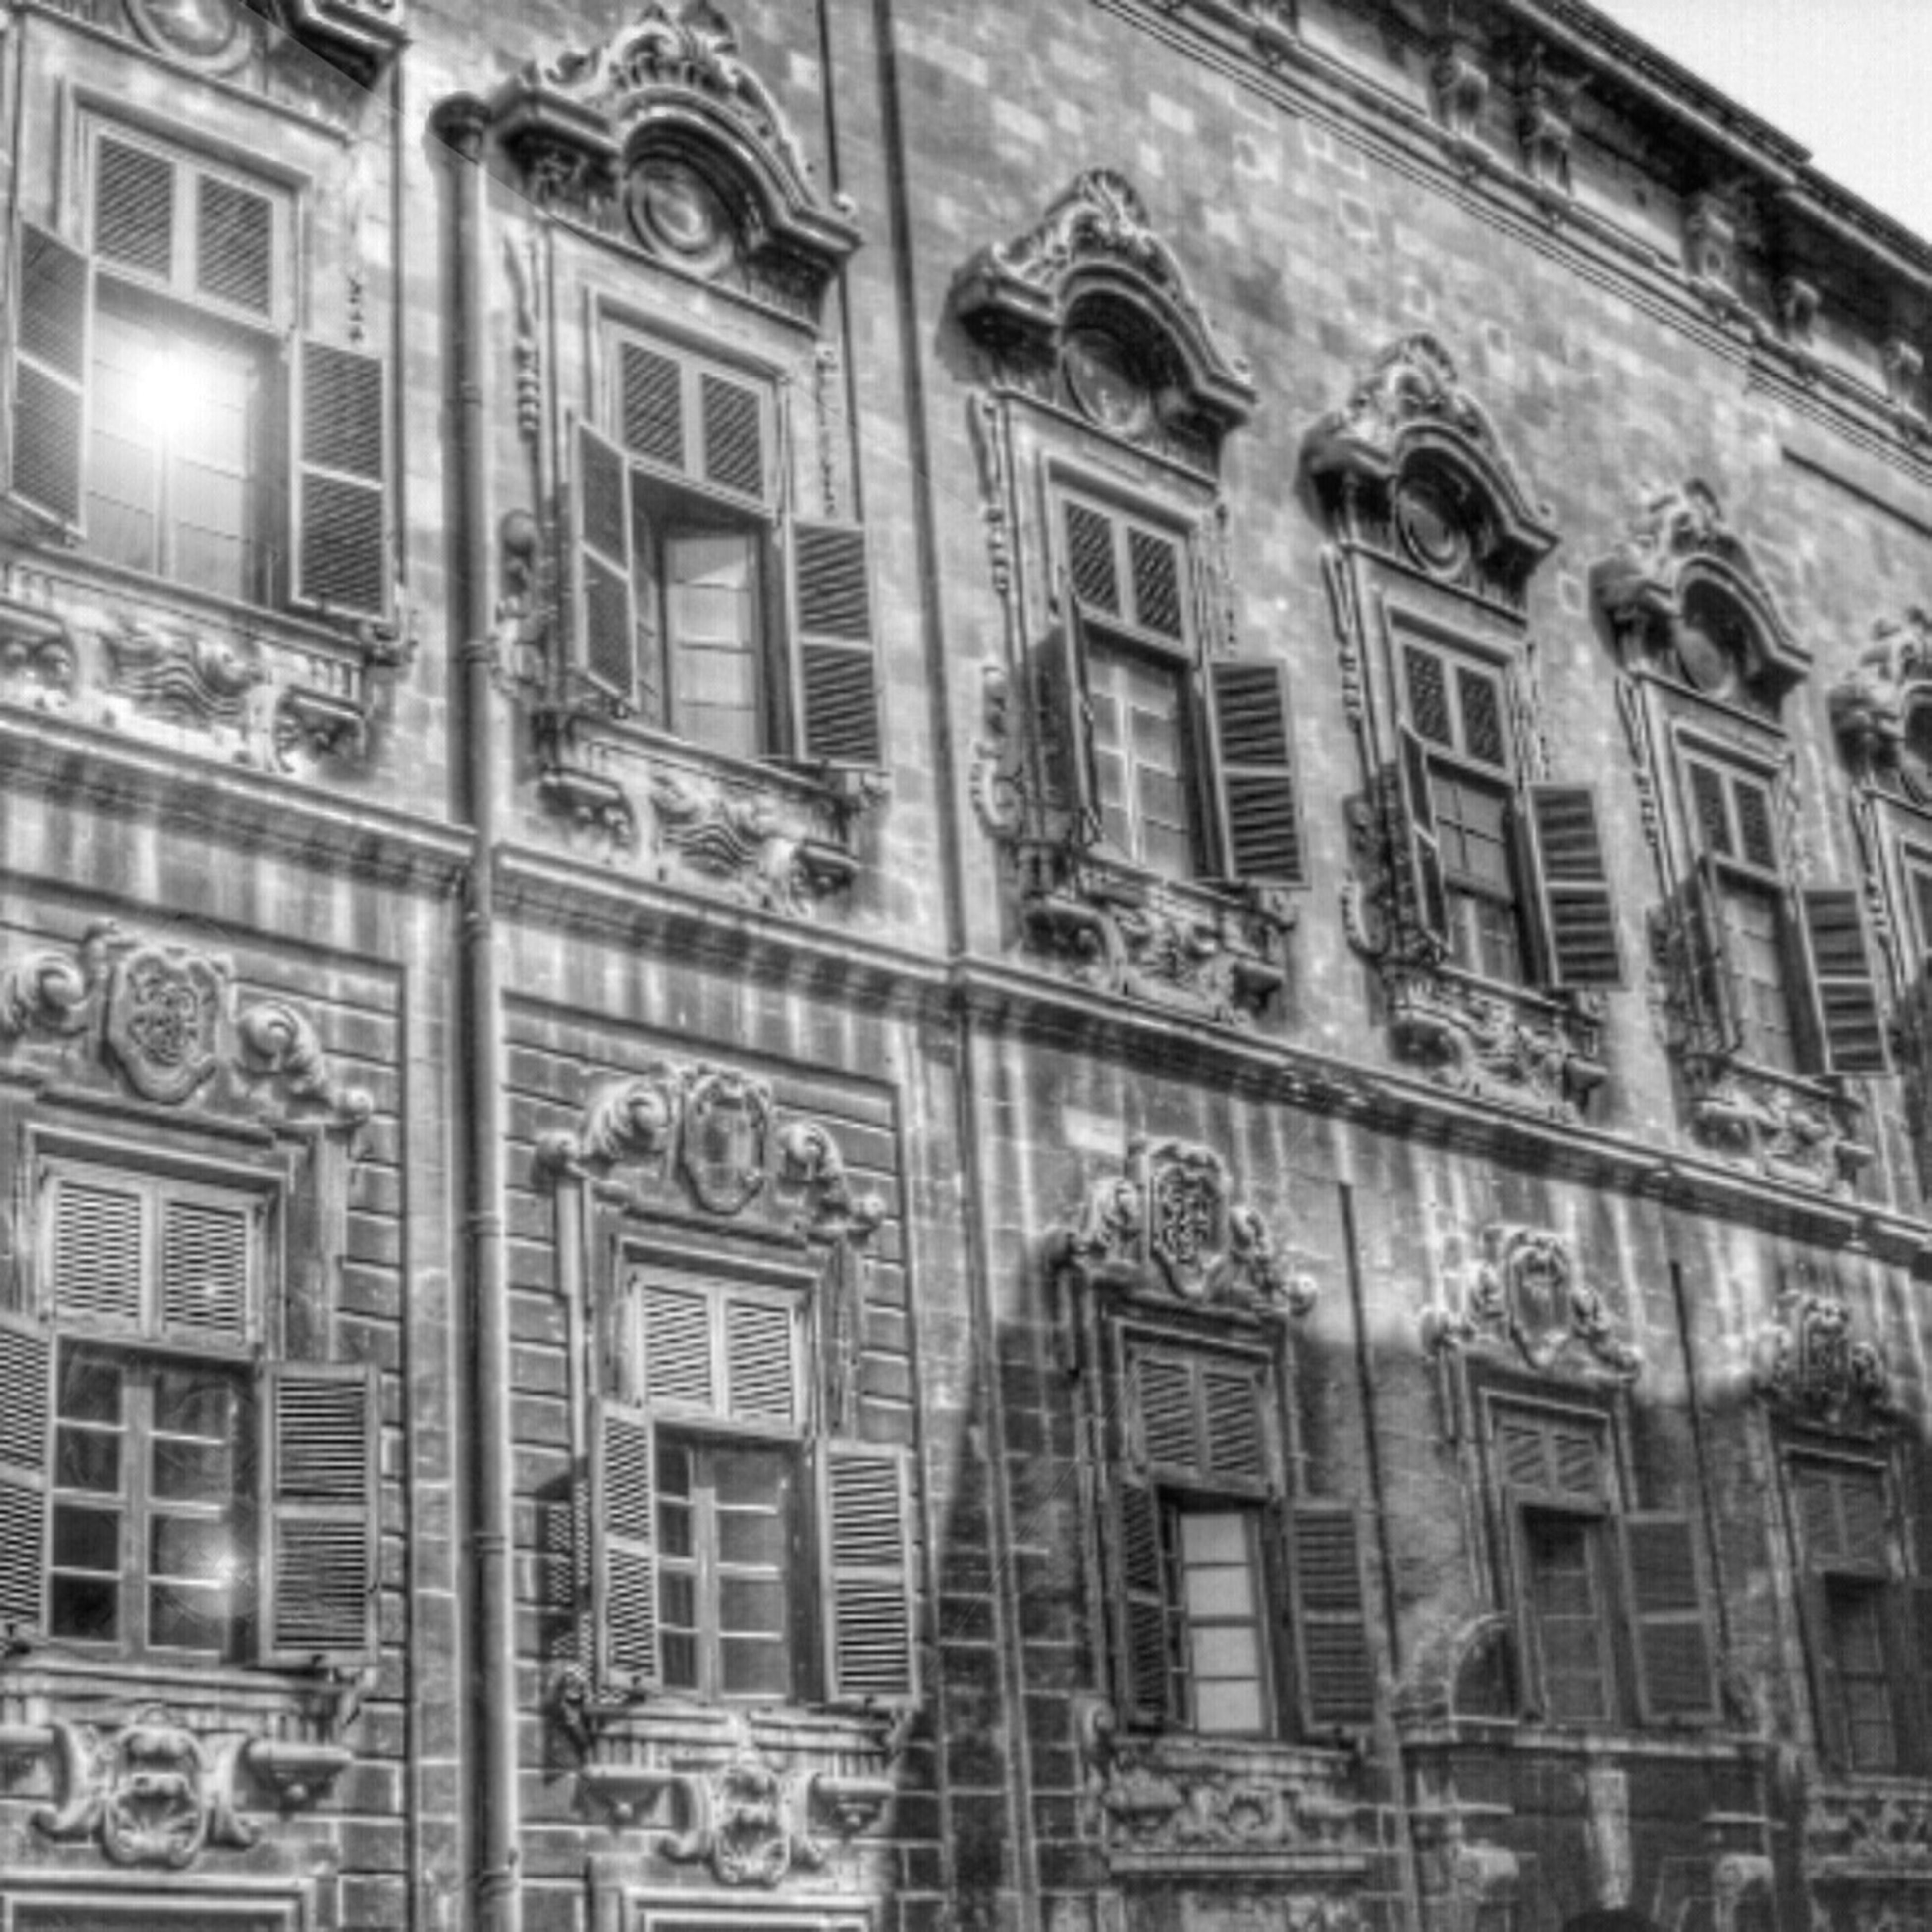 building exterior, architecture, window, built structure, low angle view, building, residential building, glass - material, residential structure, city, balcony, day, facade, outdoors, old, full frame, reflection, no people, in a row, side by side